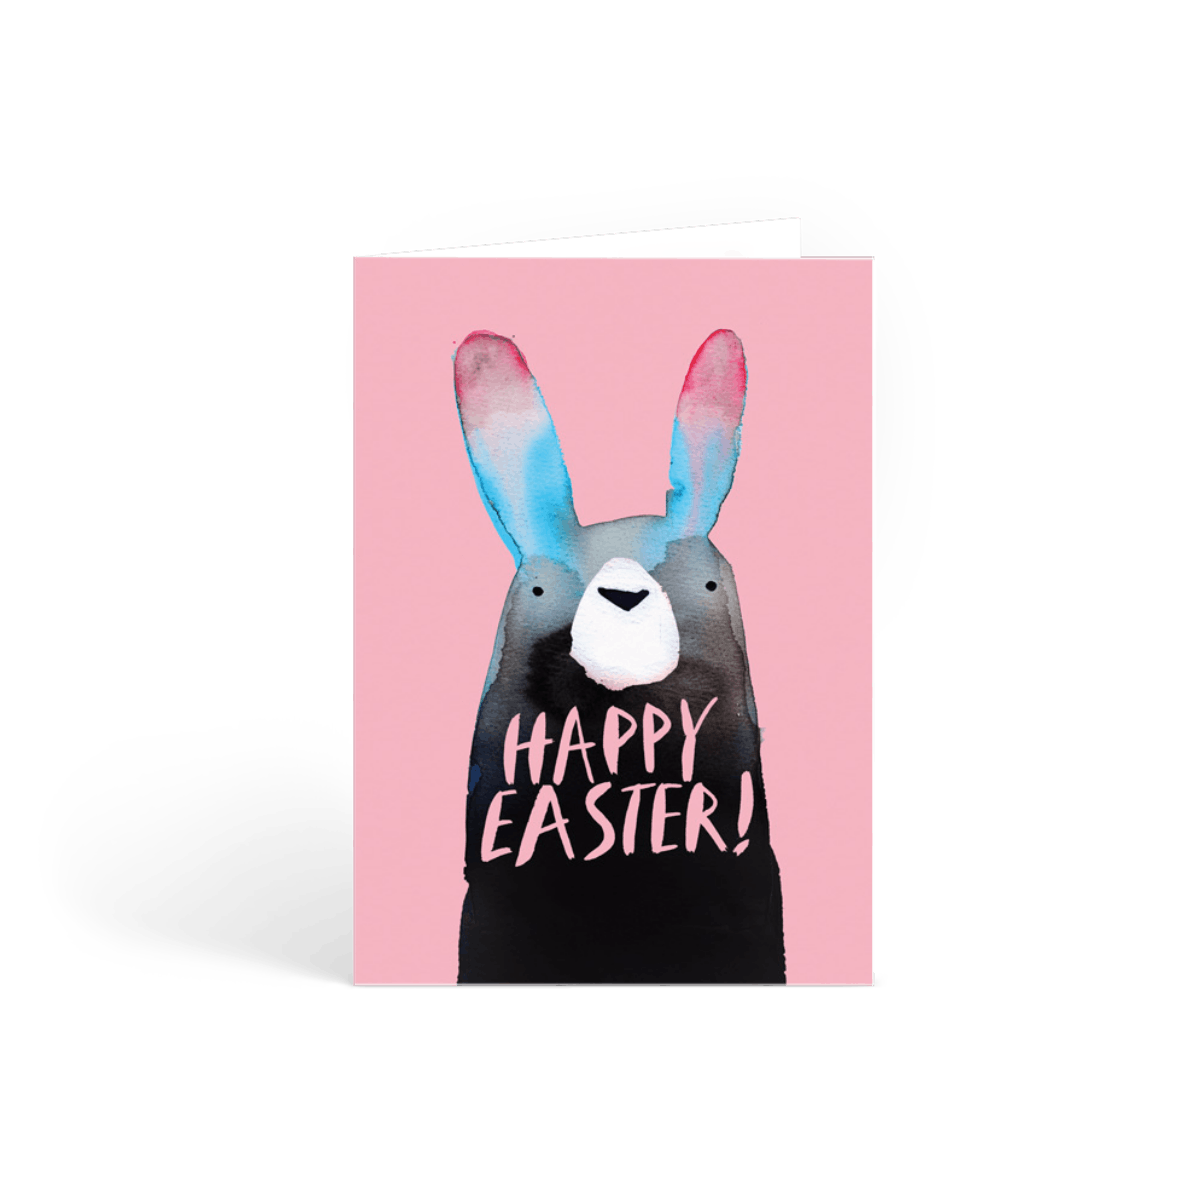 Https%3a%2f%2fwww.papier.com%2fproduct image%2f23851%2f2%2fhappy easter bunny 5967 front 1497611682.png?ixlib=rb 1.1